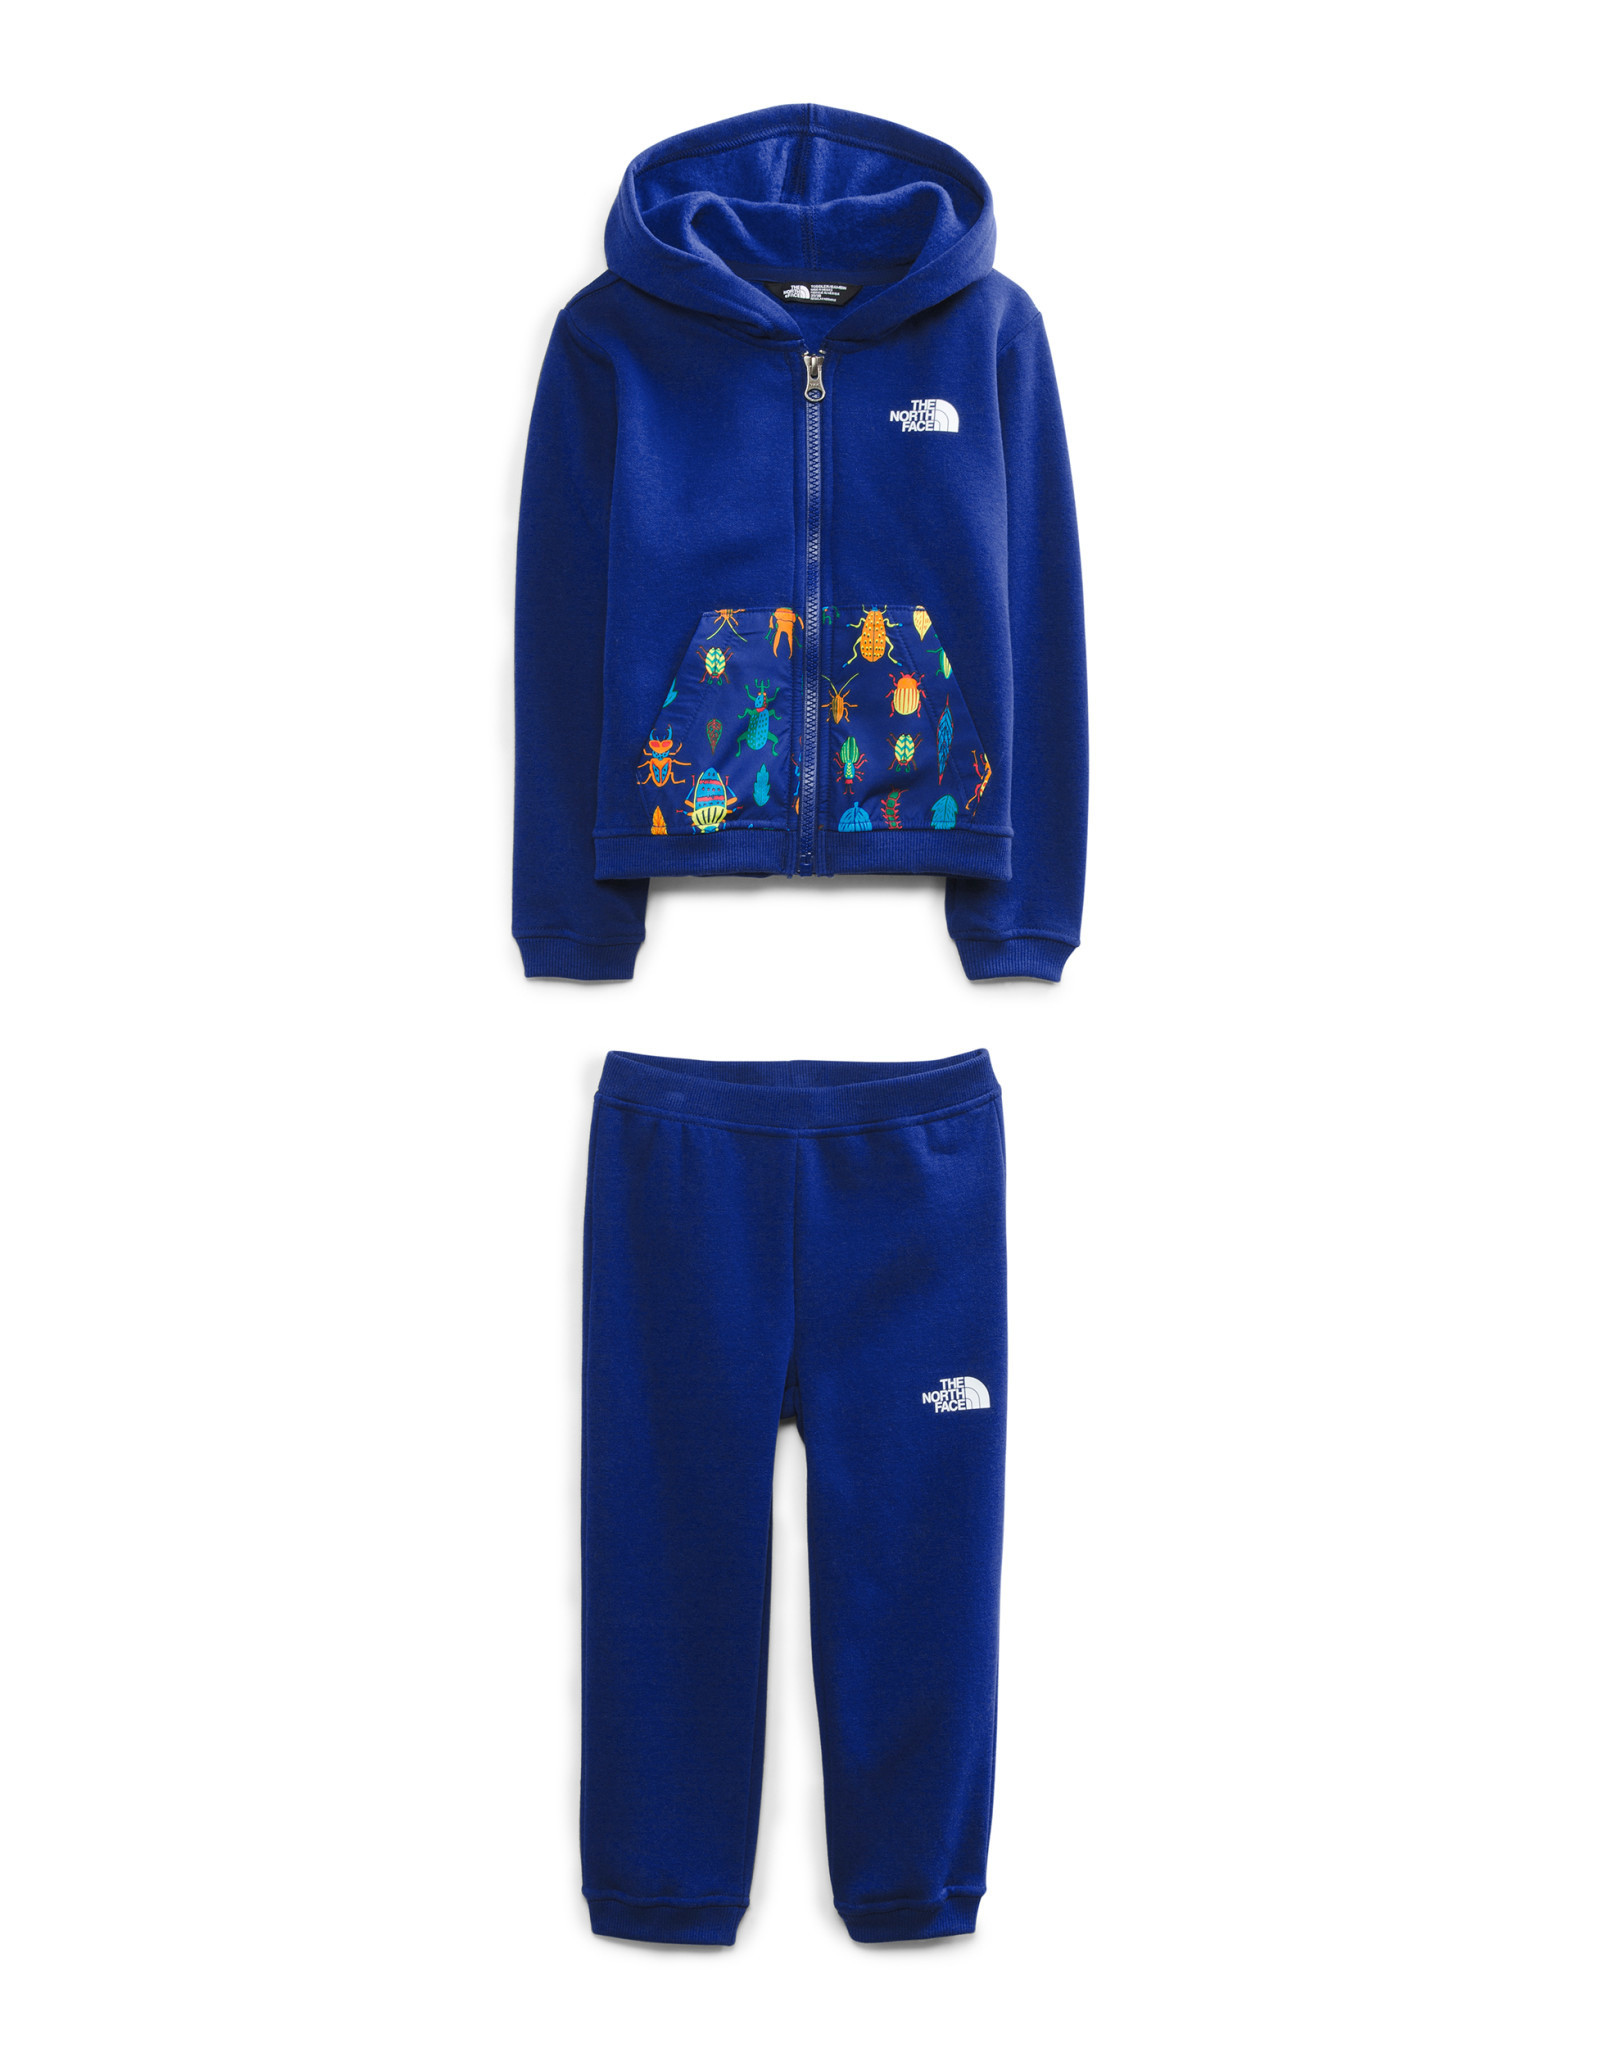 The North Face The North Face Toddler Camp Fleece Set -S2021